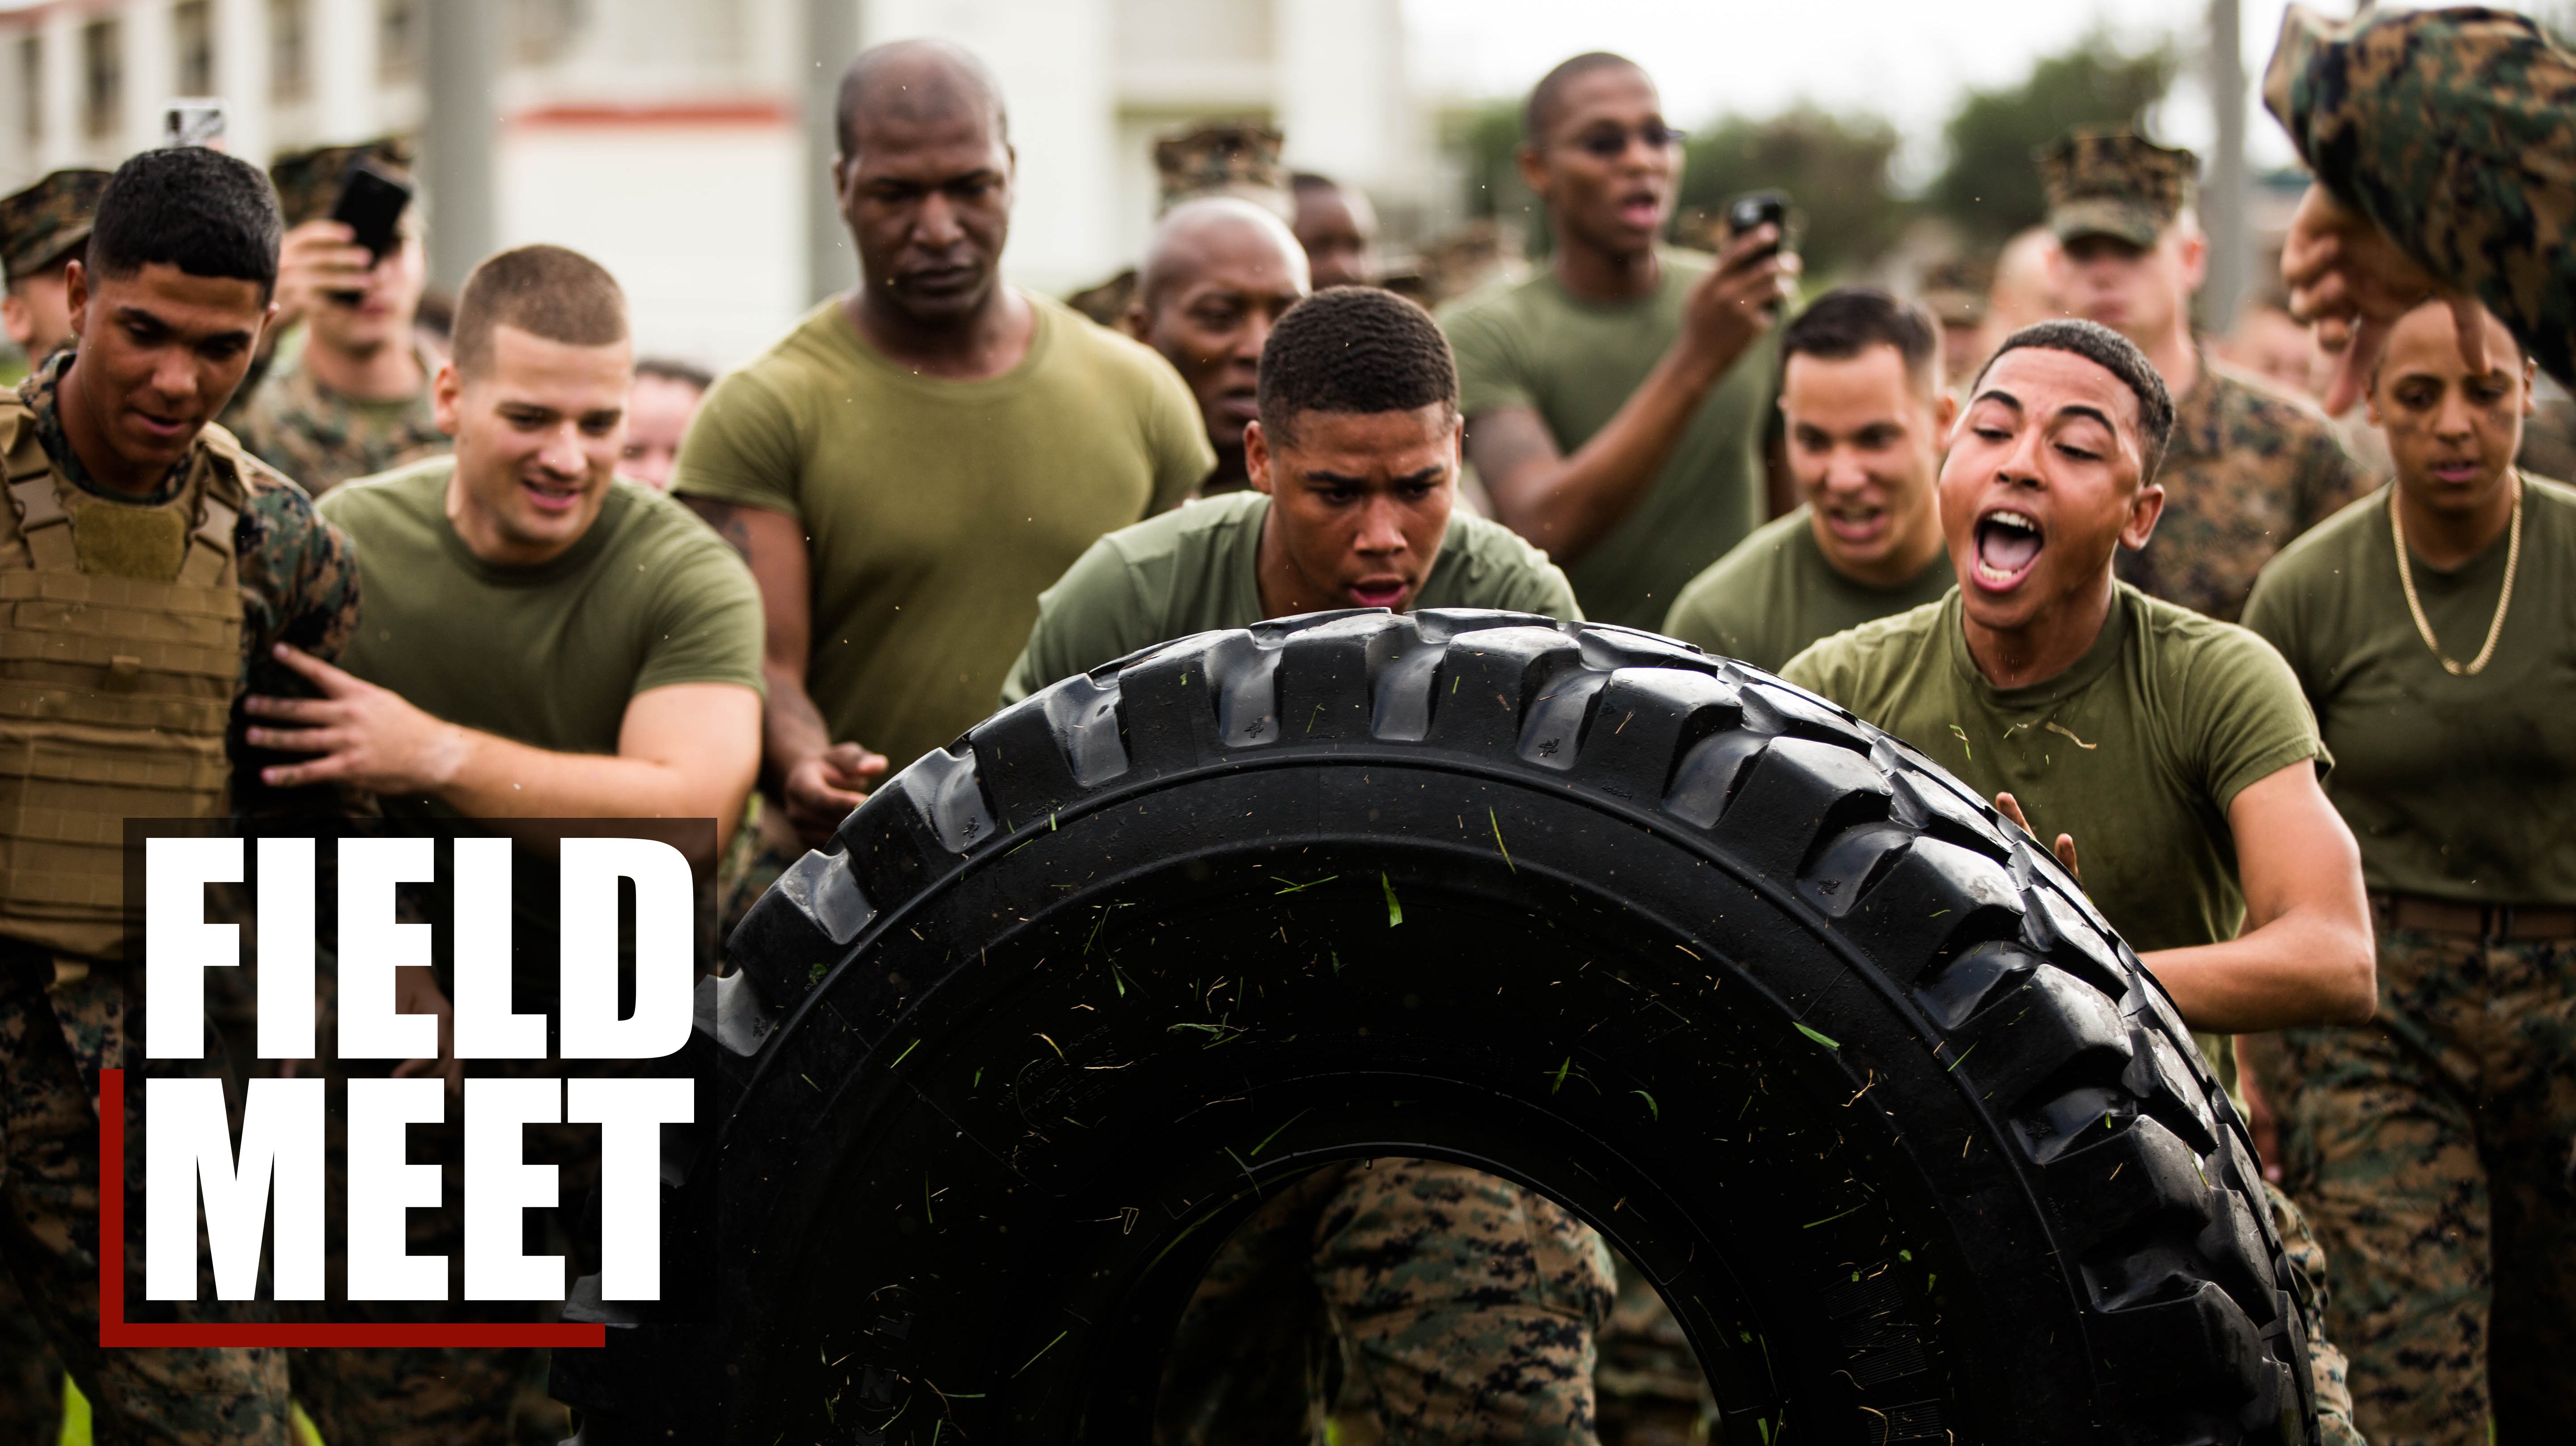 Marines with 3rd Marine Division compete in a field meet